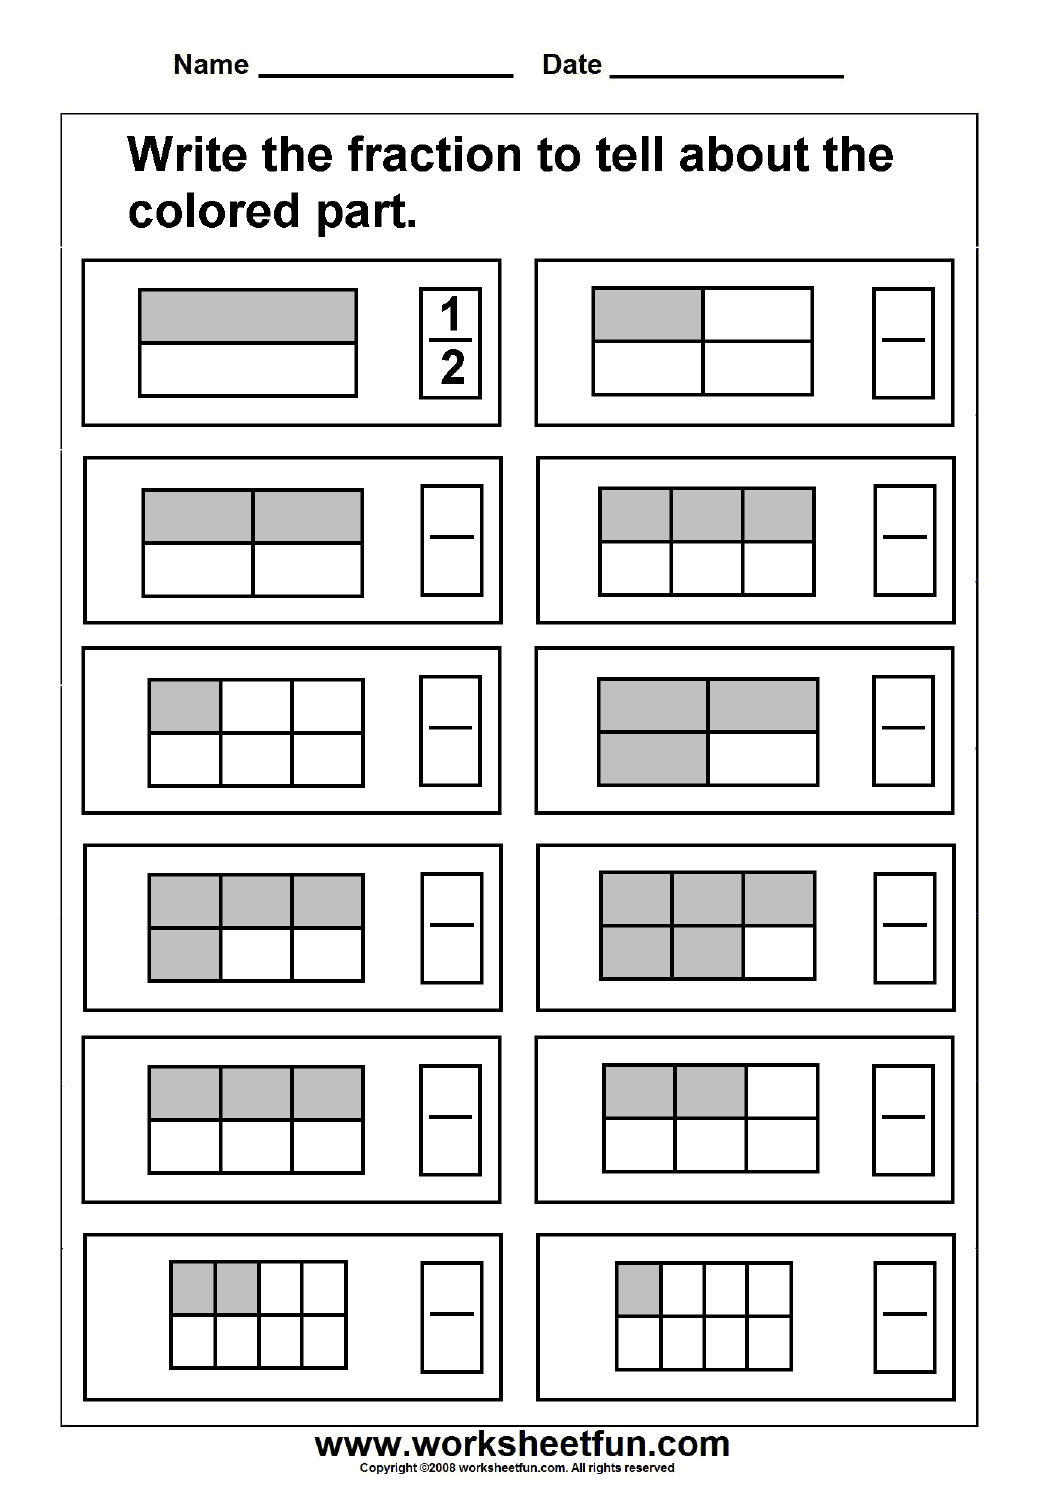 Fraction FREE Printable Worksheets Worksheetfun – Worksheets on Fractions